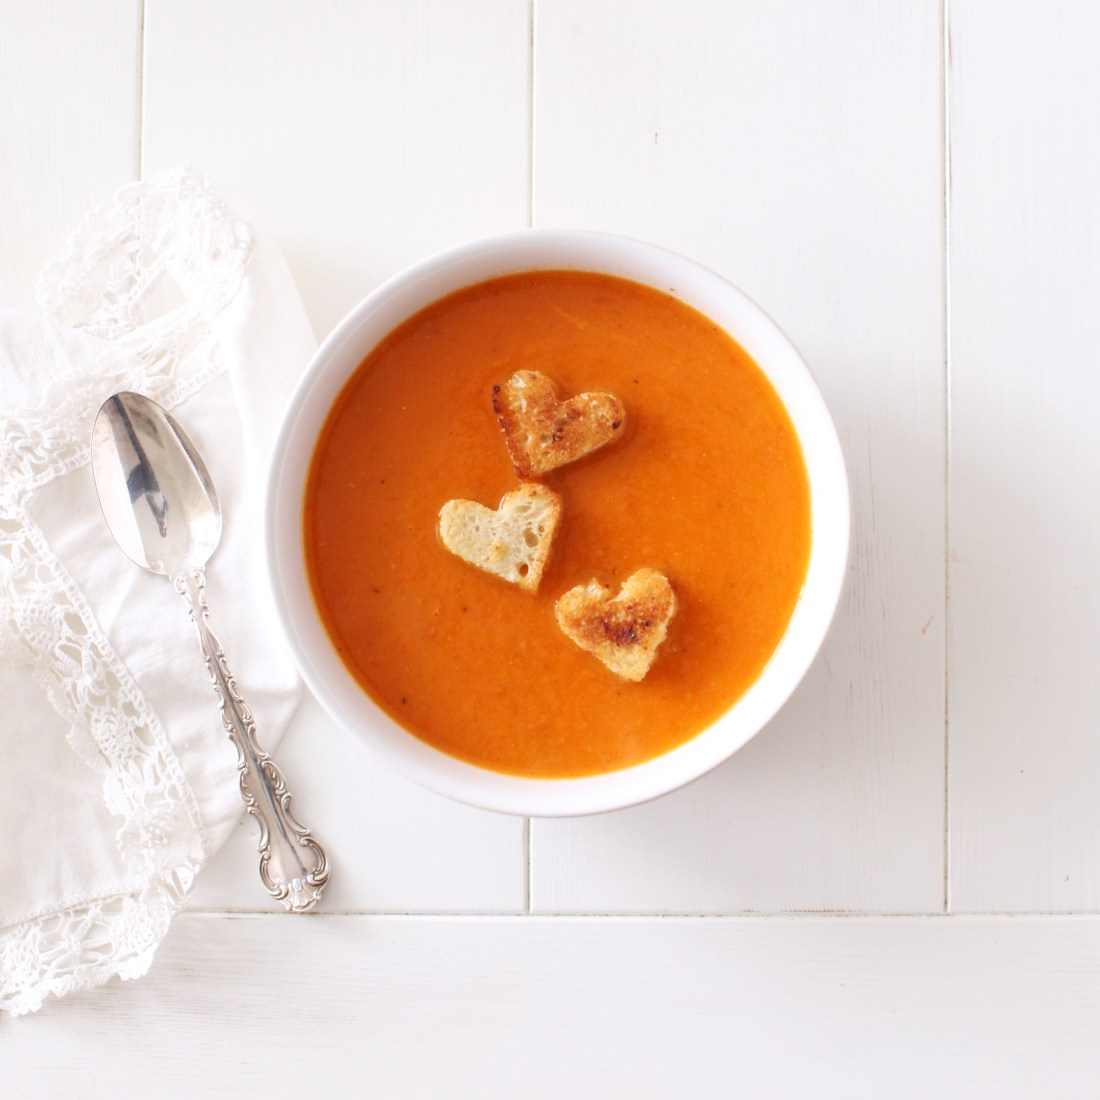 Roasted Tomato Pepper Soup with heart shaped croutons